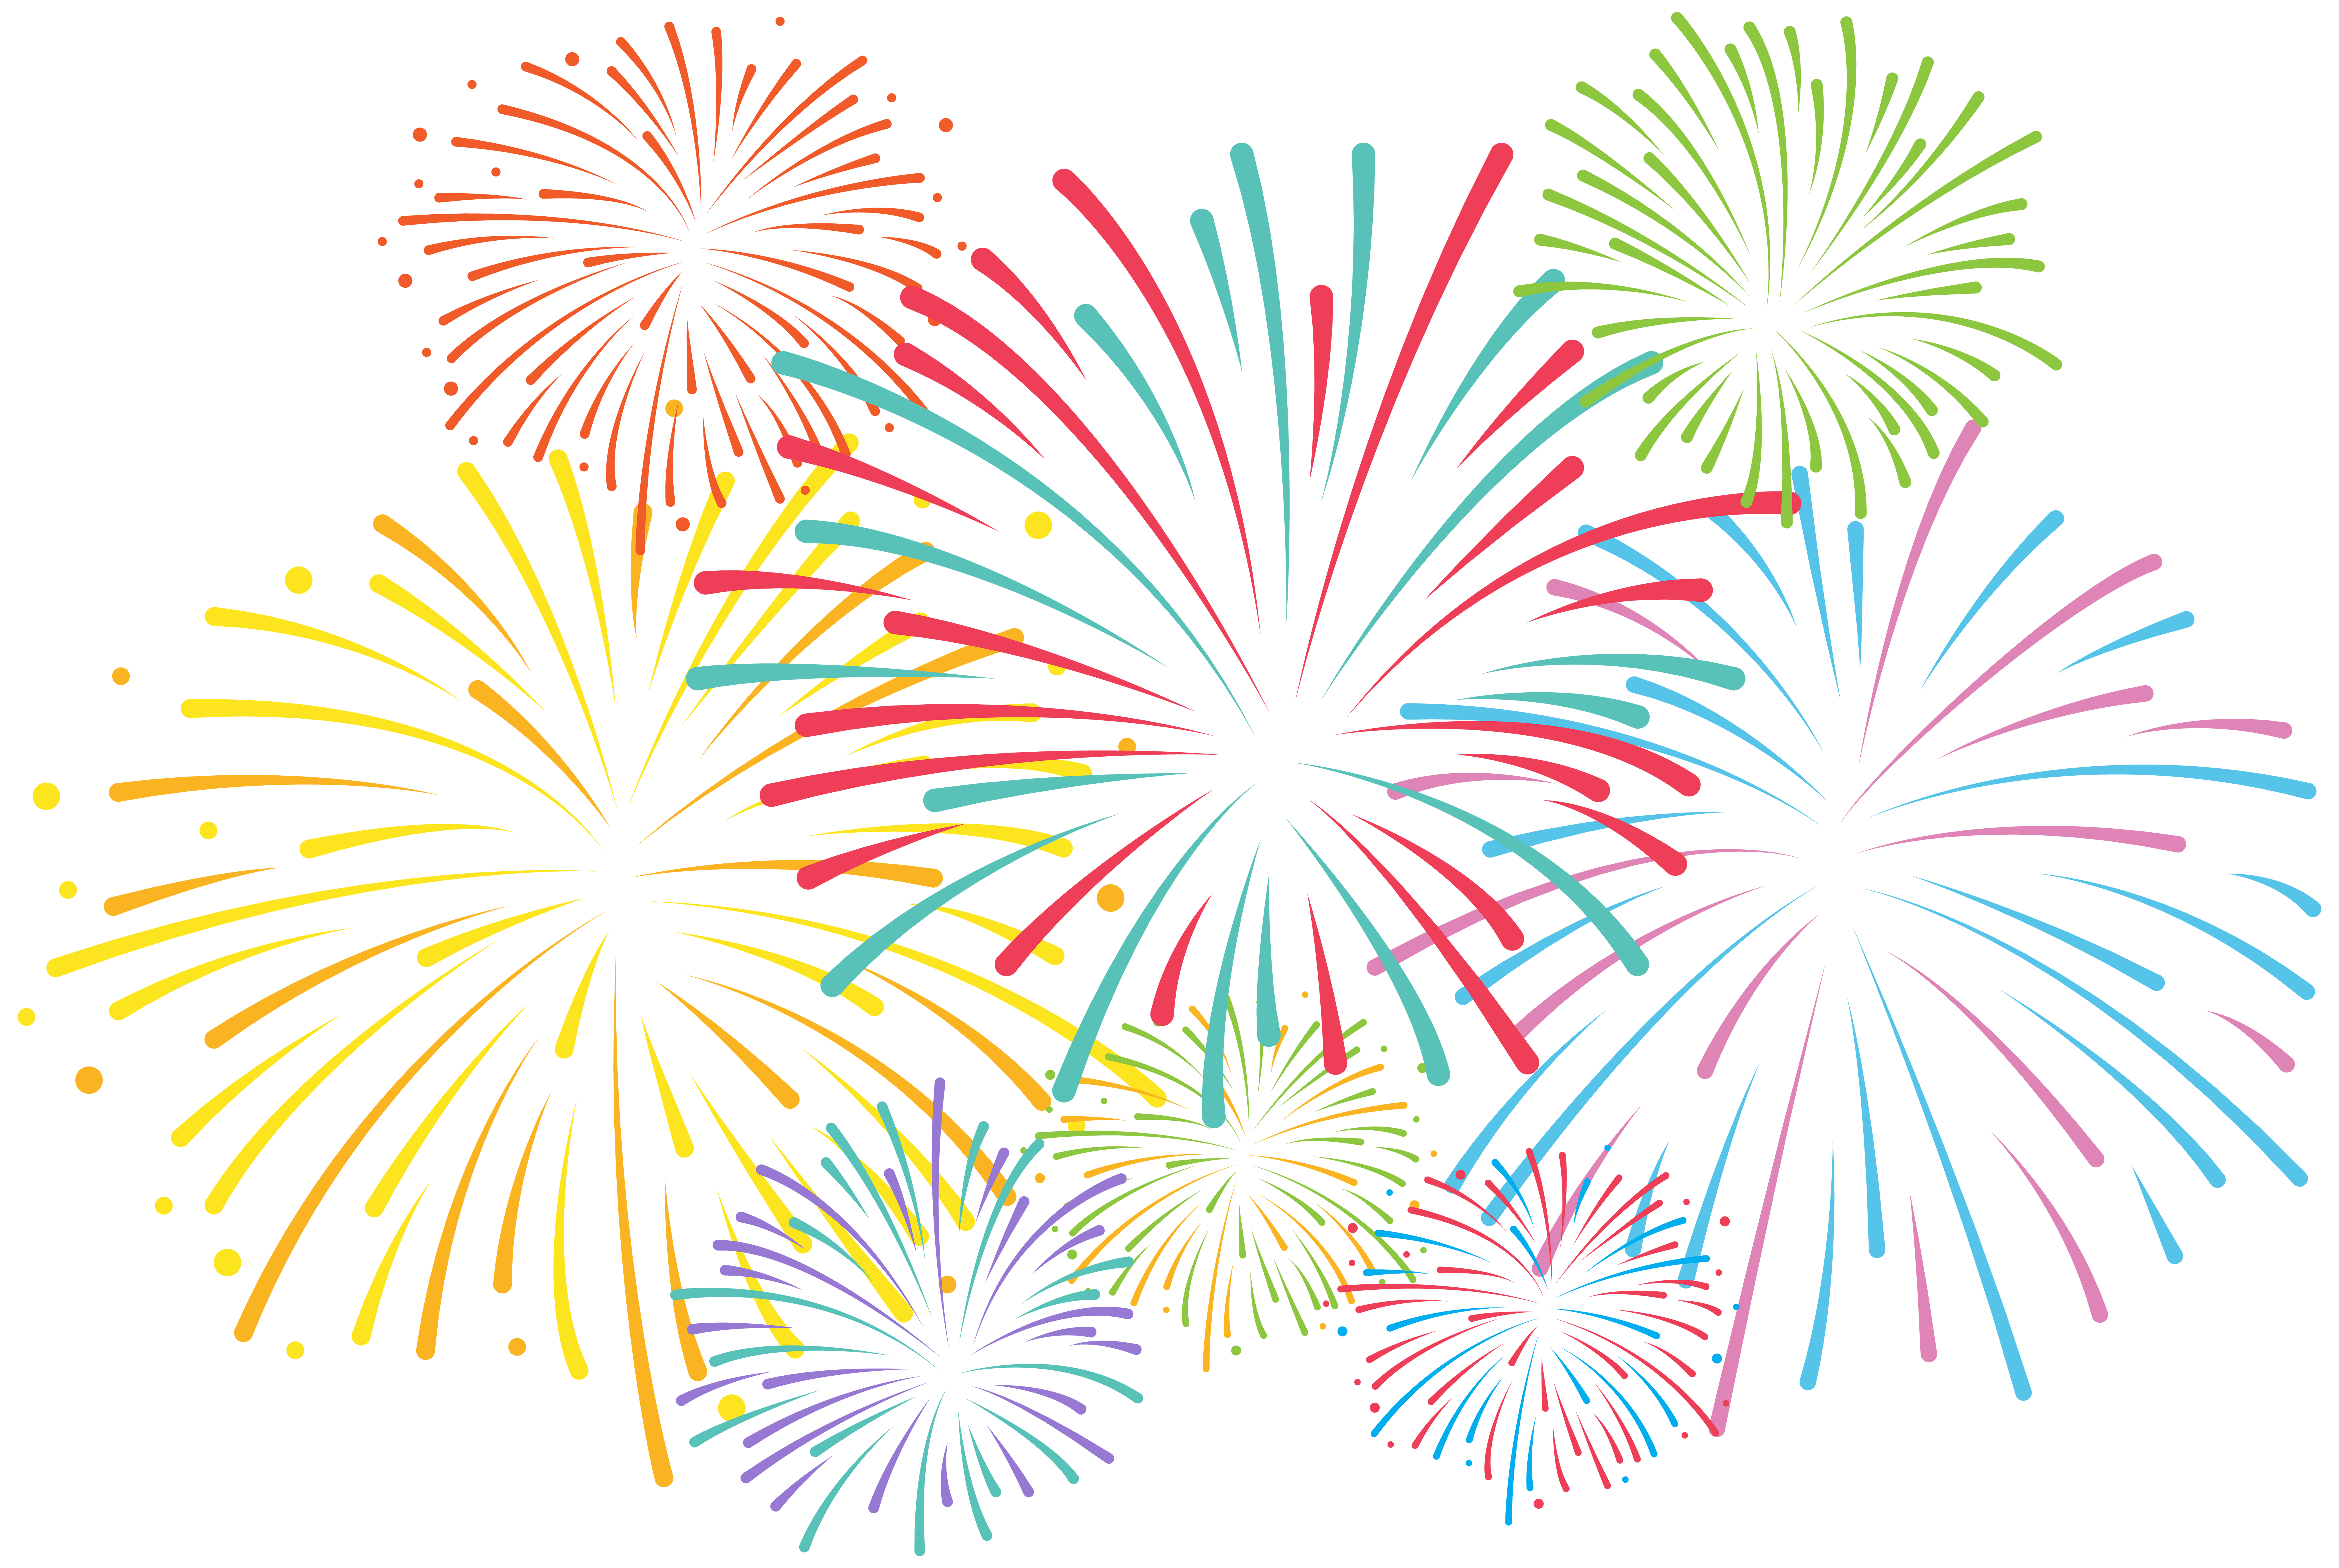 Png clip art gallery. Fireworks clipart svg stock